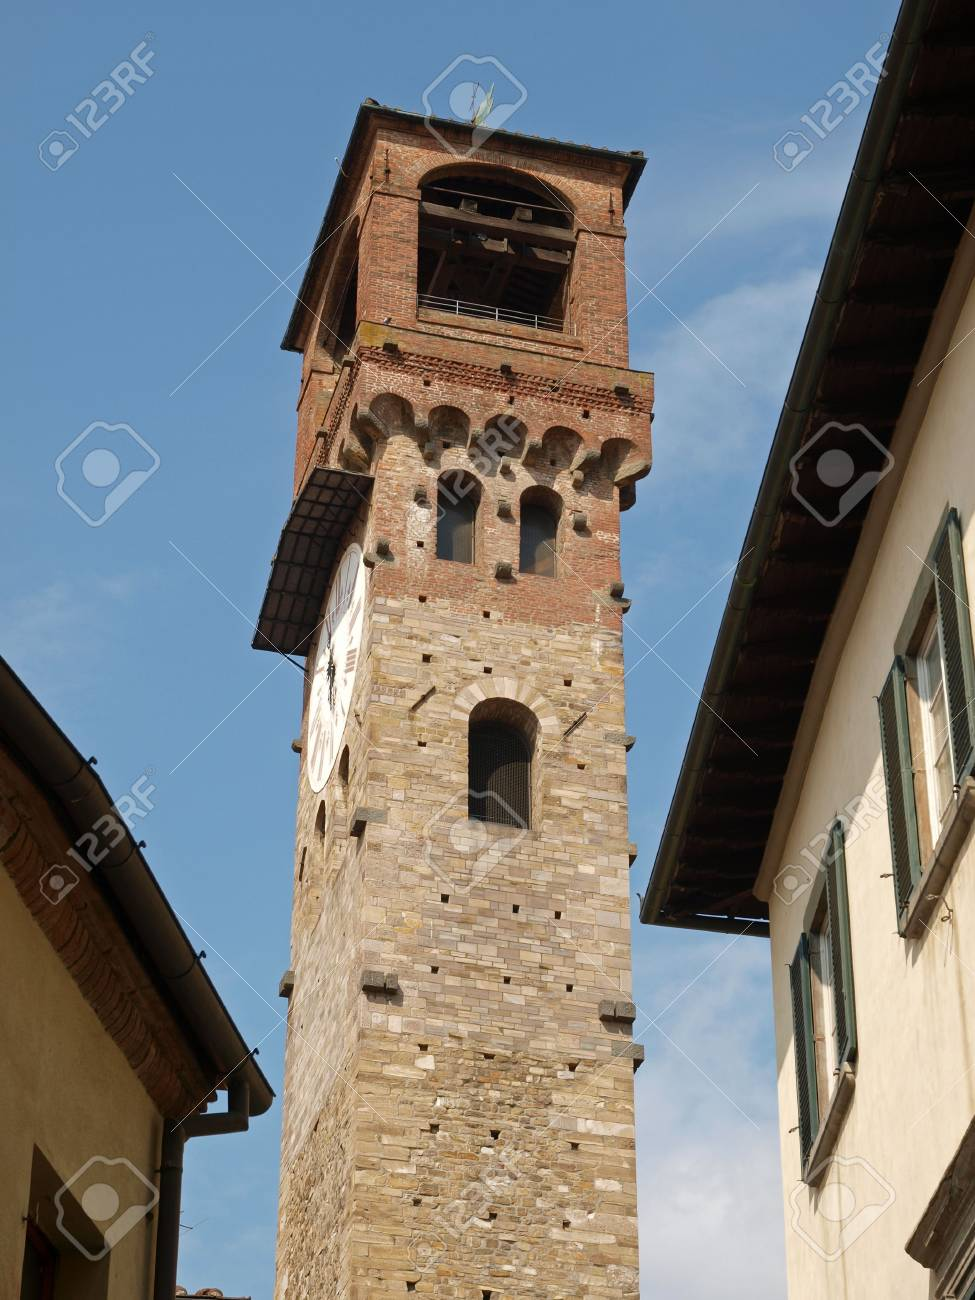 Torre delle Ore Lucca Tuscany Italy - 6091643